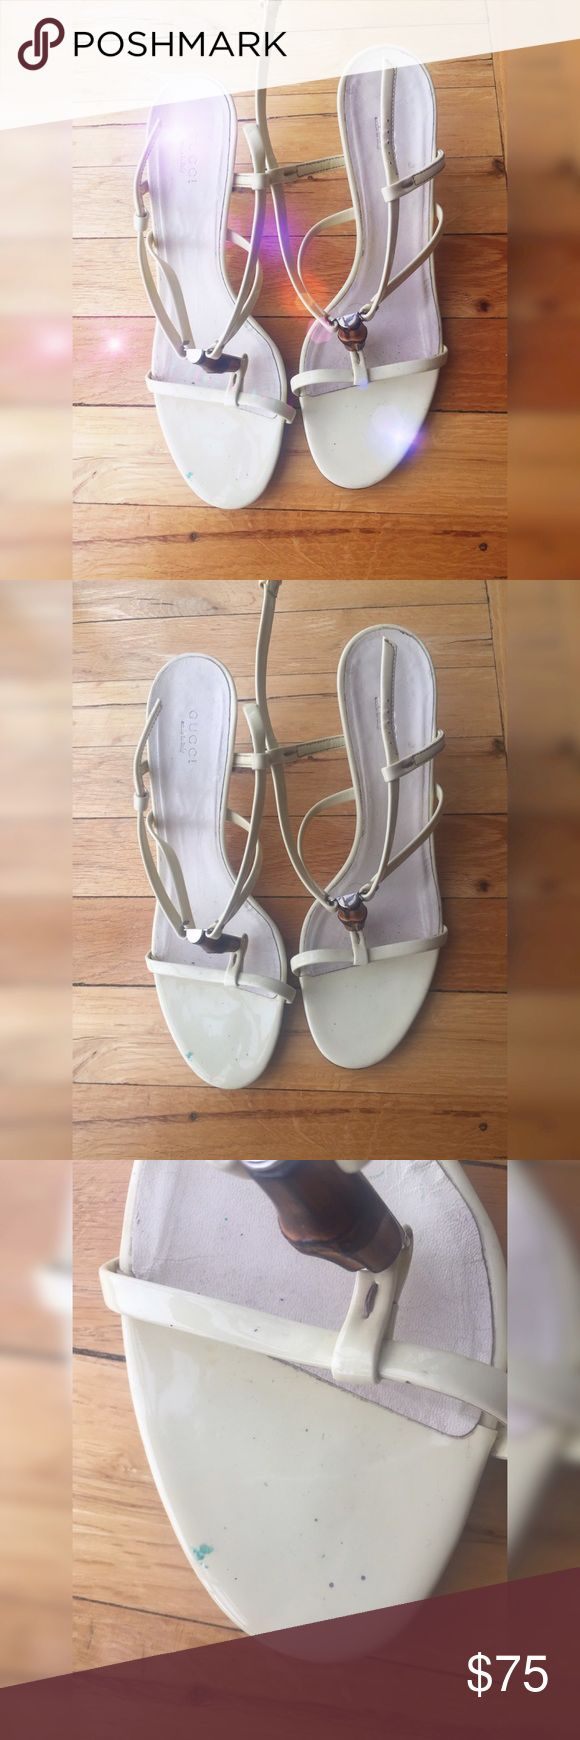 """Off White Leather Gucci Wooden Pump Heels These shoes do show signs of wear. There are some marks on the shoe. The Heels are in decent condition. Some of the Leather is peeling. Heel height: about 3"""" inches. Overall 4/10 condition. Willing to negotiate price. Gucci Shoes Heels"""